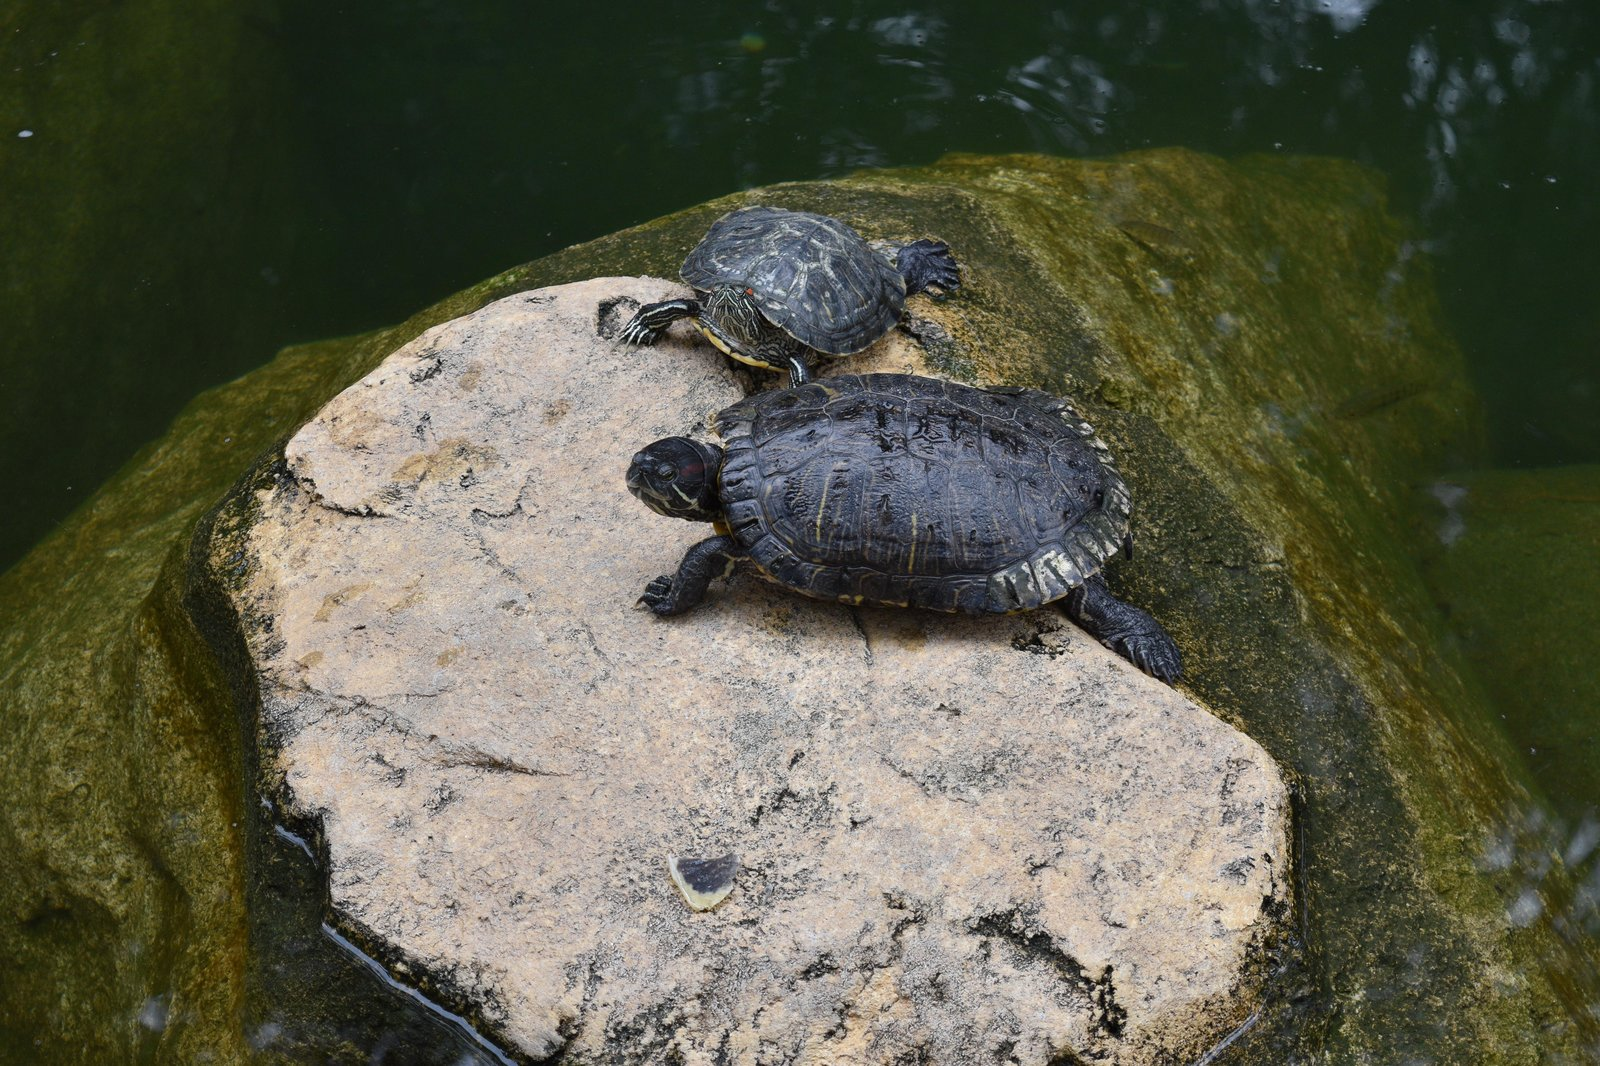 Turtles in Hong Kong Park